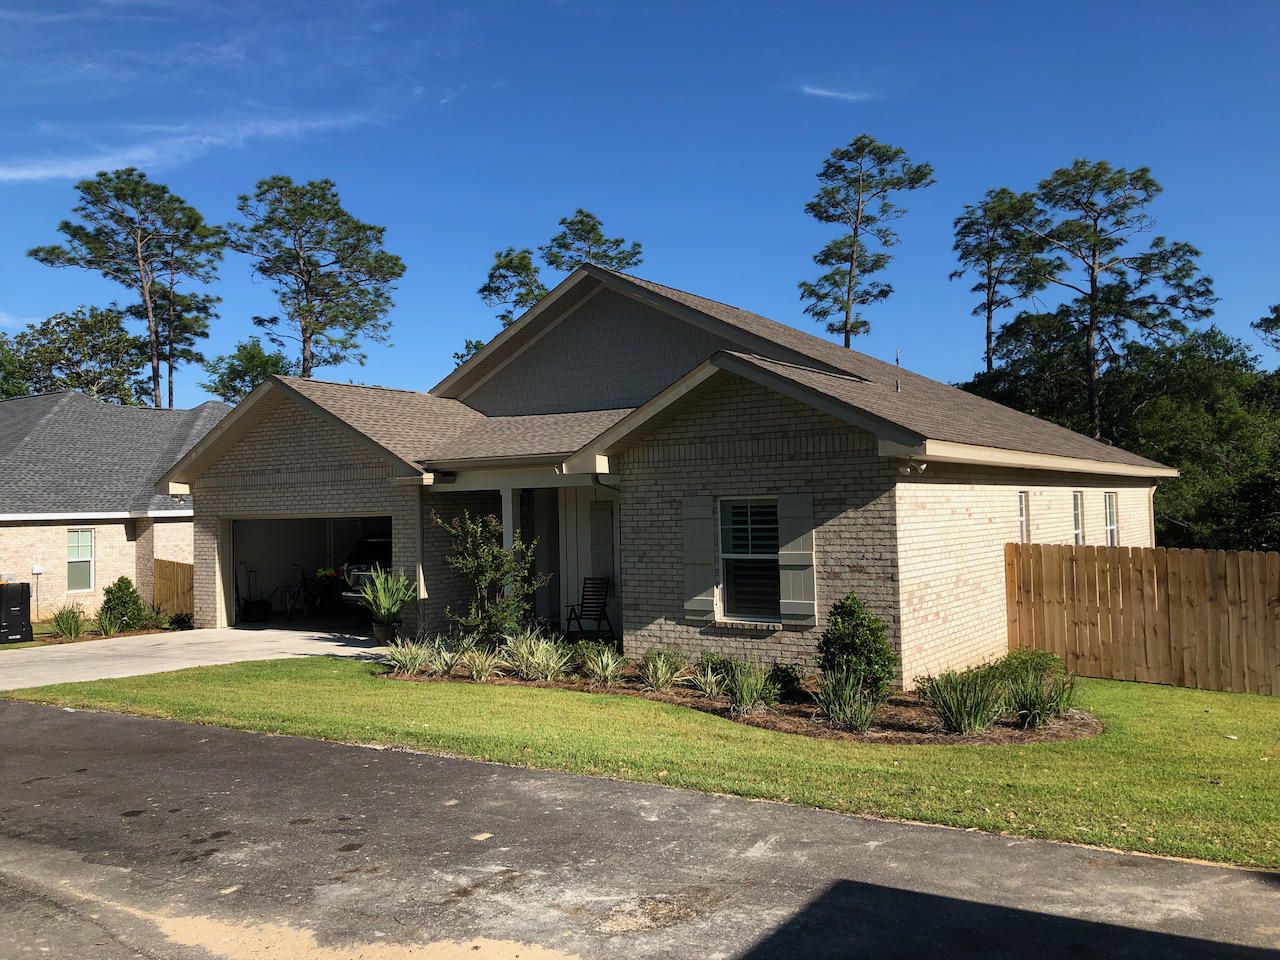 This one year old home in the boutique neighborhood of Pinecrest Heights has 4 bedrooms, 2.5 baths, engineered hardwoods throughout, upgraded professional series stainless appliance, and all the other wants for a one year old home.